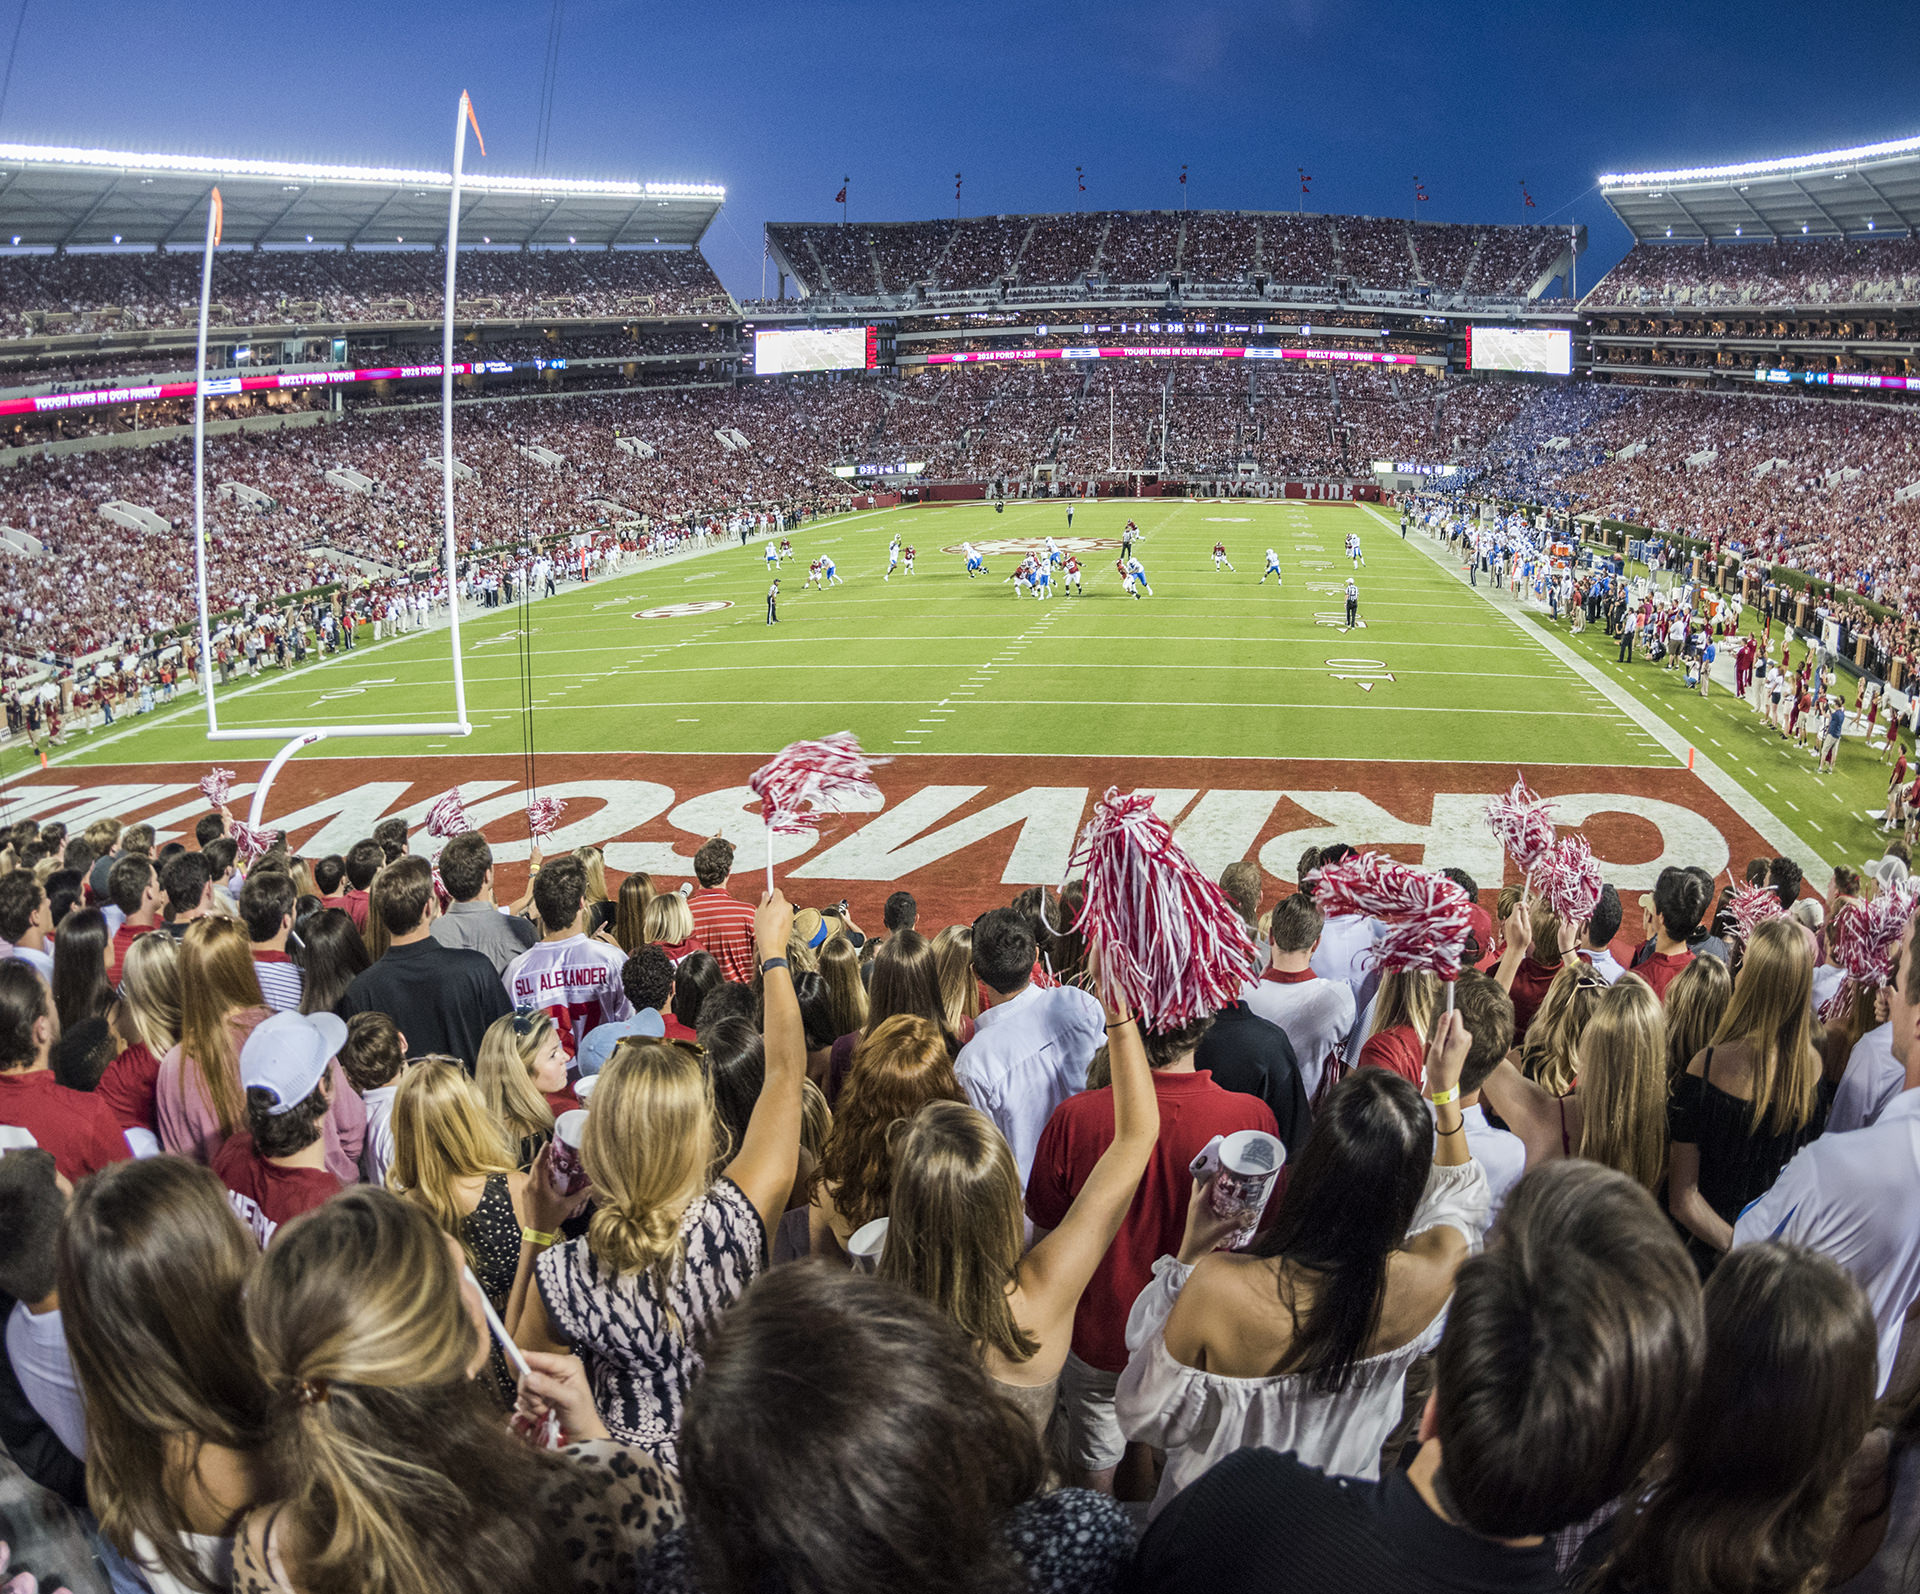 UA's Bryant Denny Stadium During a Football Game